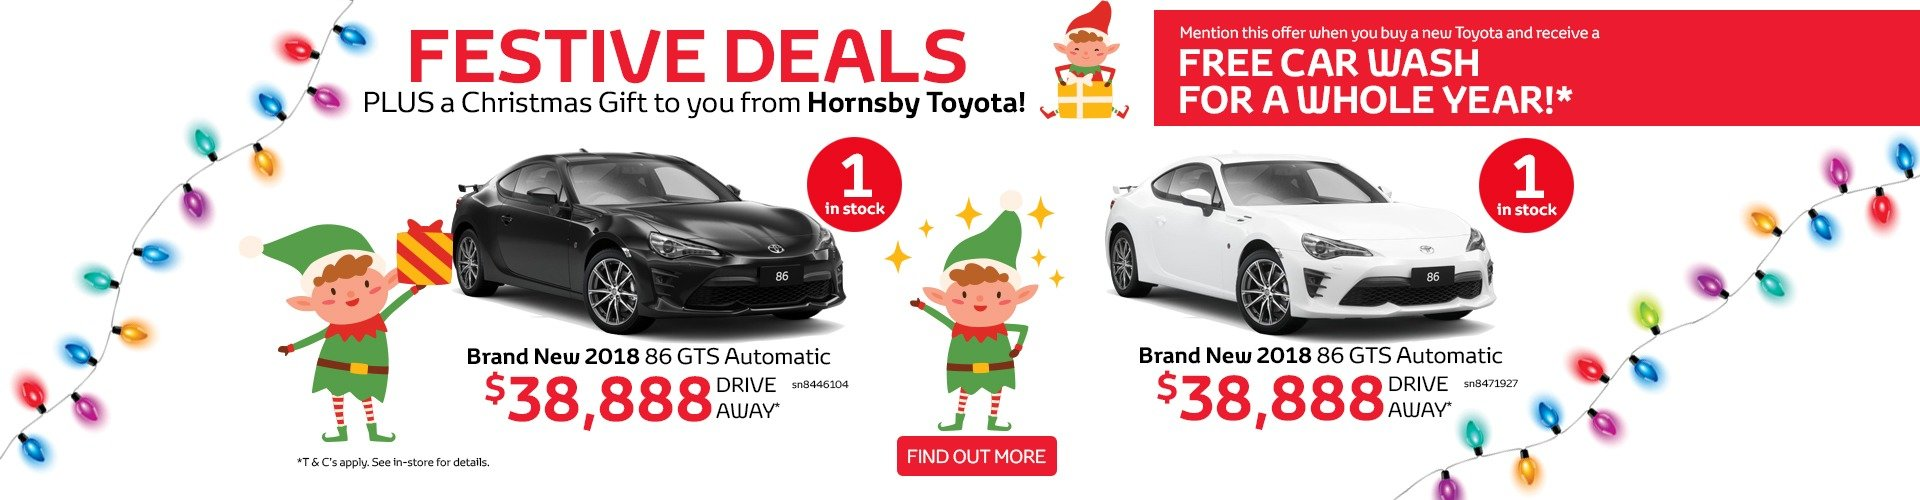 Festive Deals at Hornsby Toyota